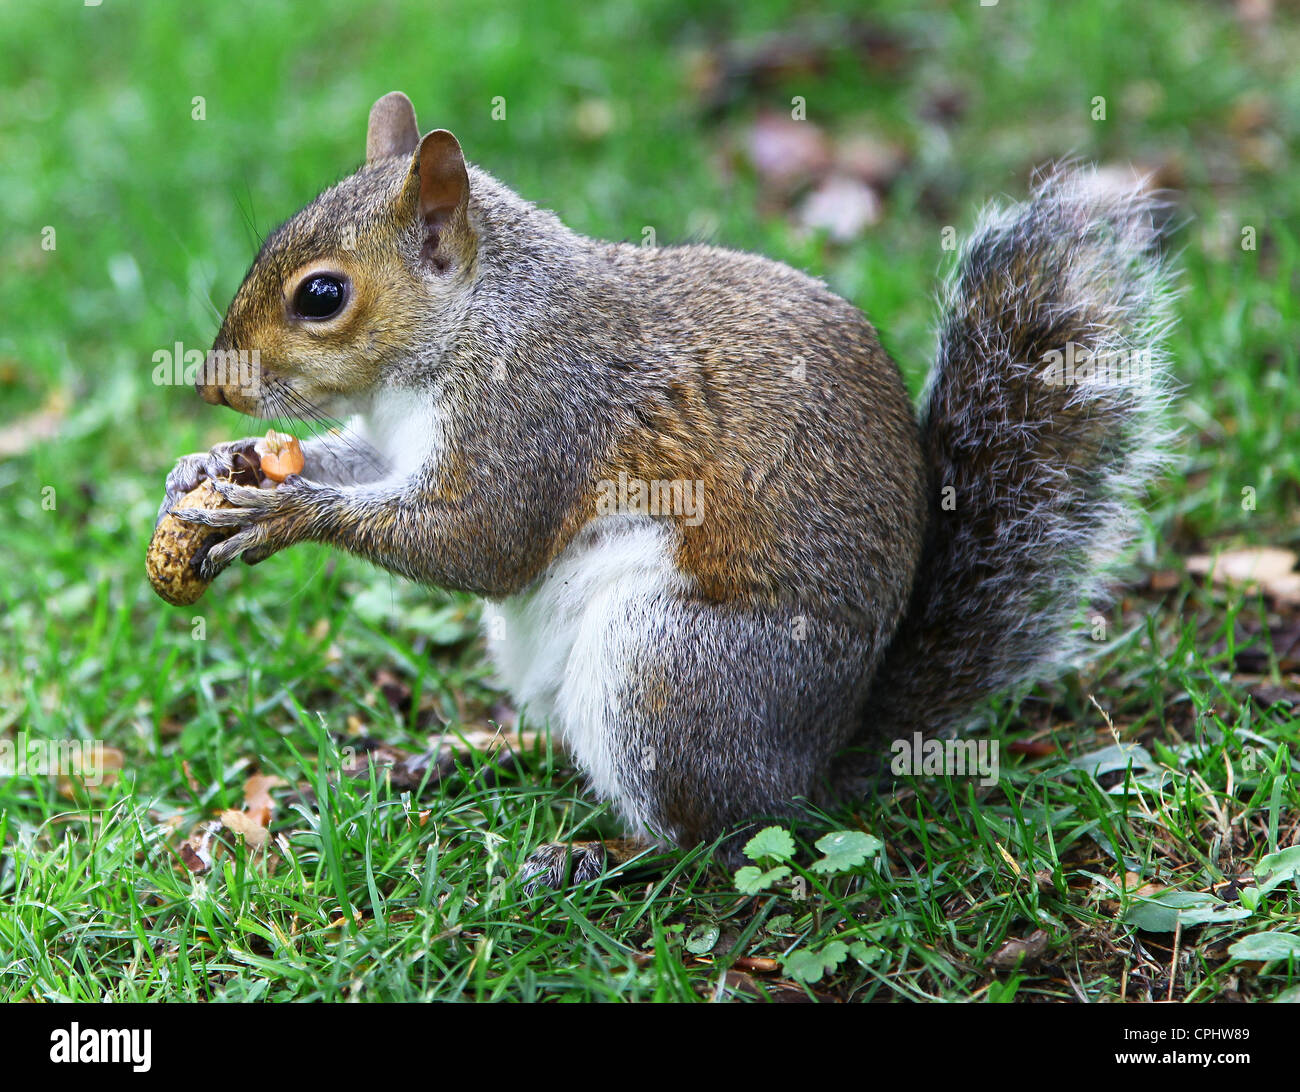 close-up-shot-of-a-grey-squirrel-sciurus